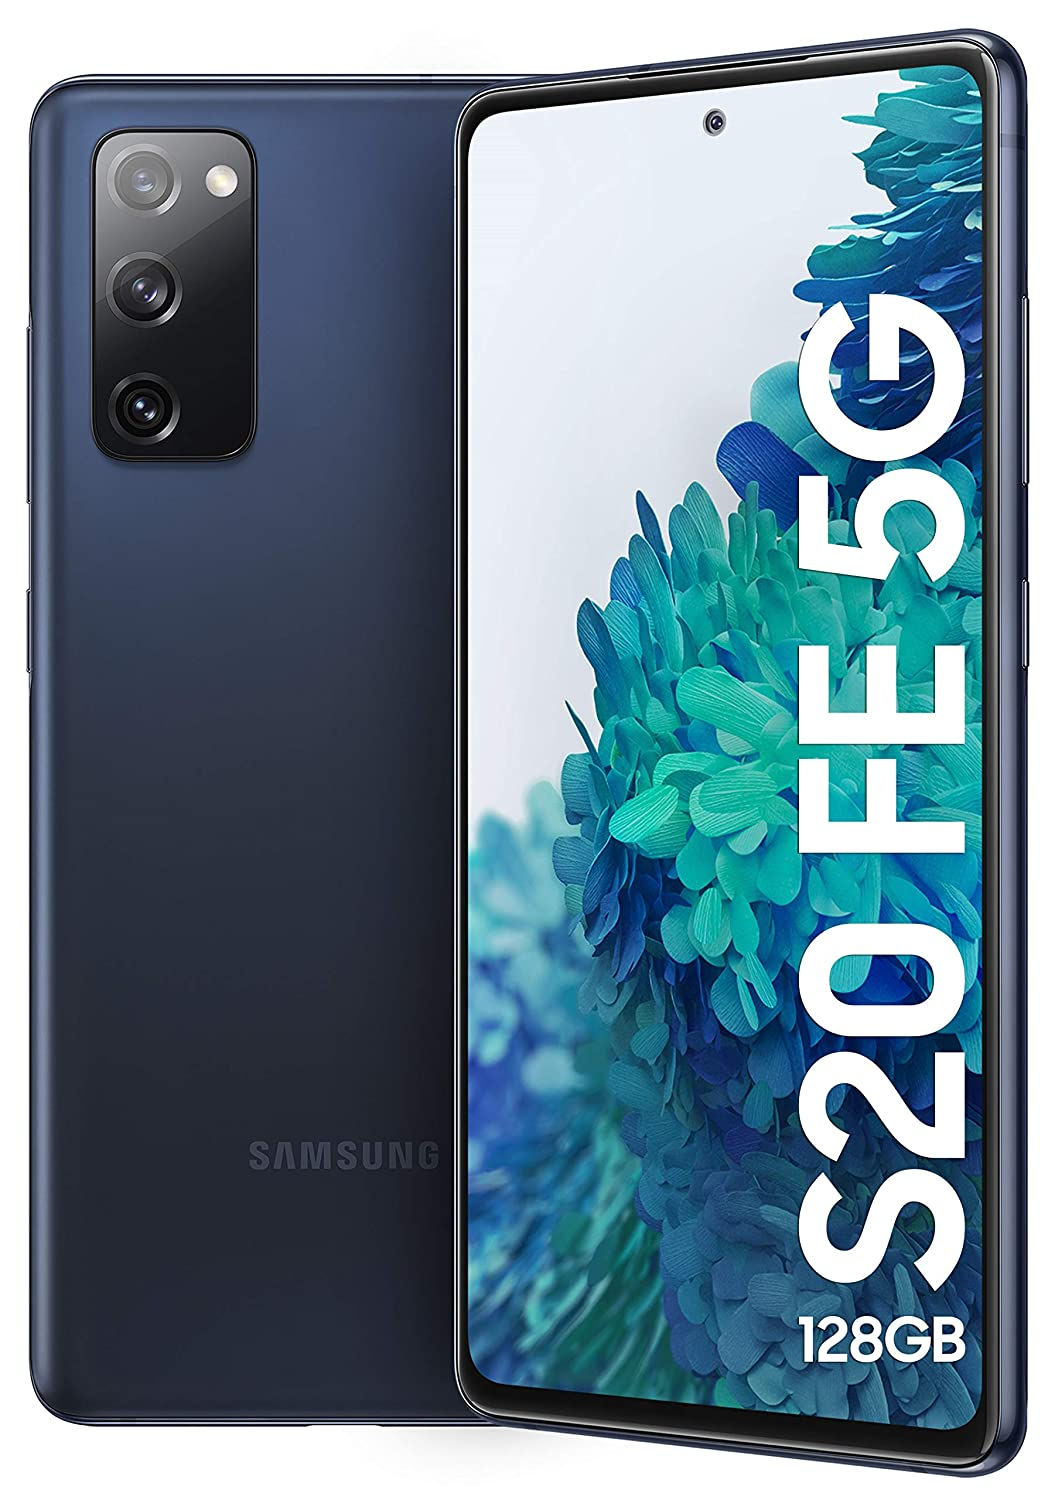 Save 36 % on Samsung Galaxy S20 FE 5G | New Launch Offer | Starting from